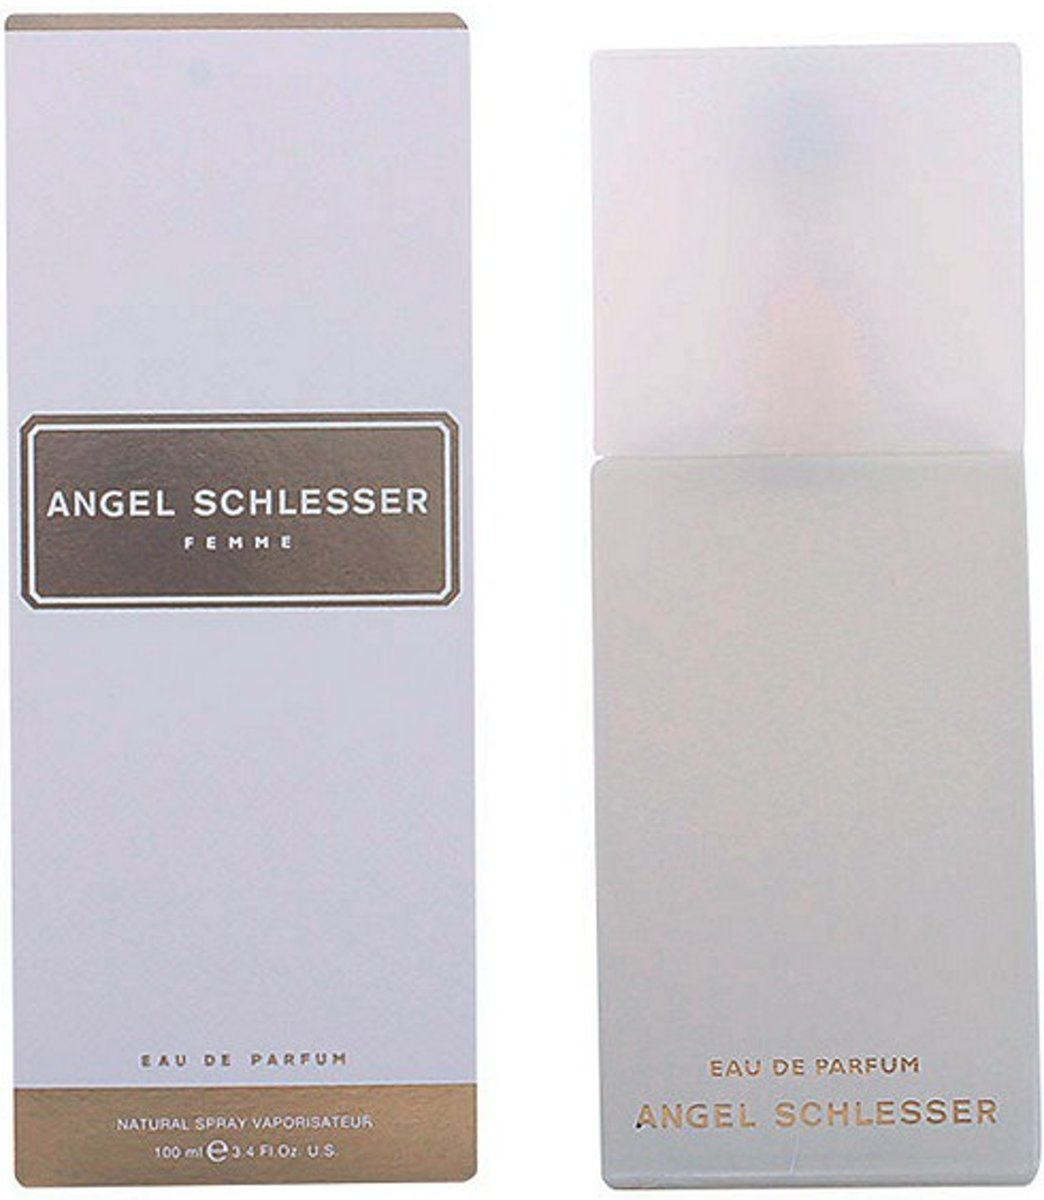 ANGEL SCHLESSER edp vapo 30 ml